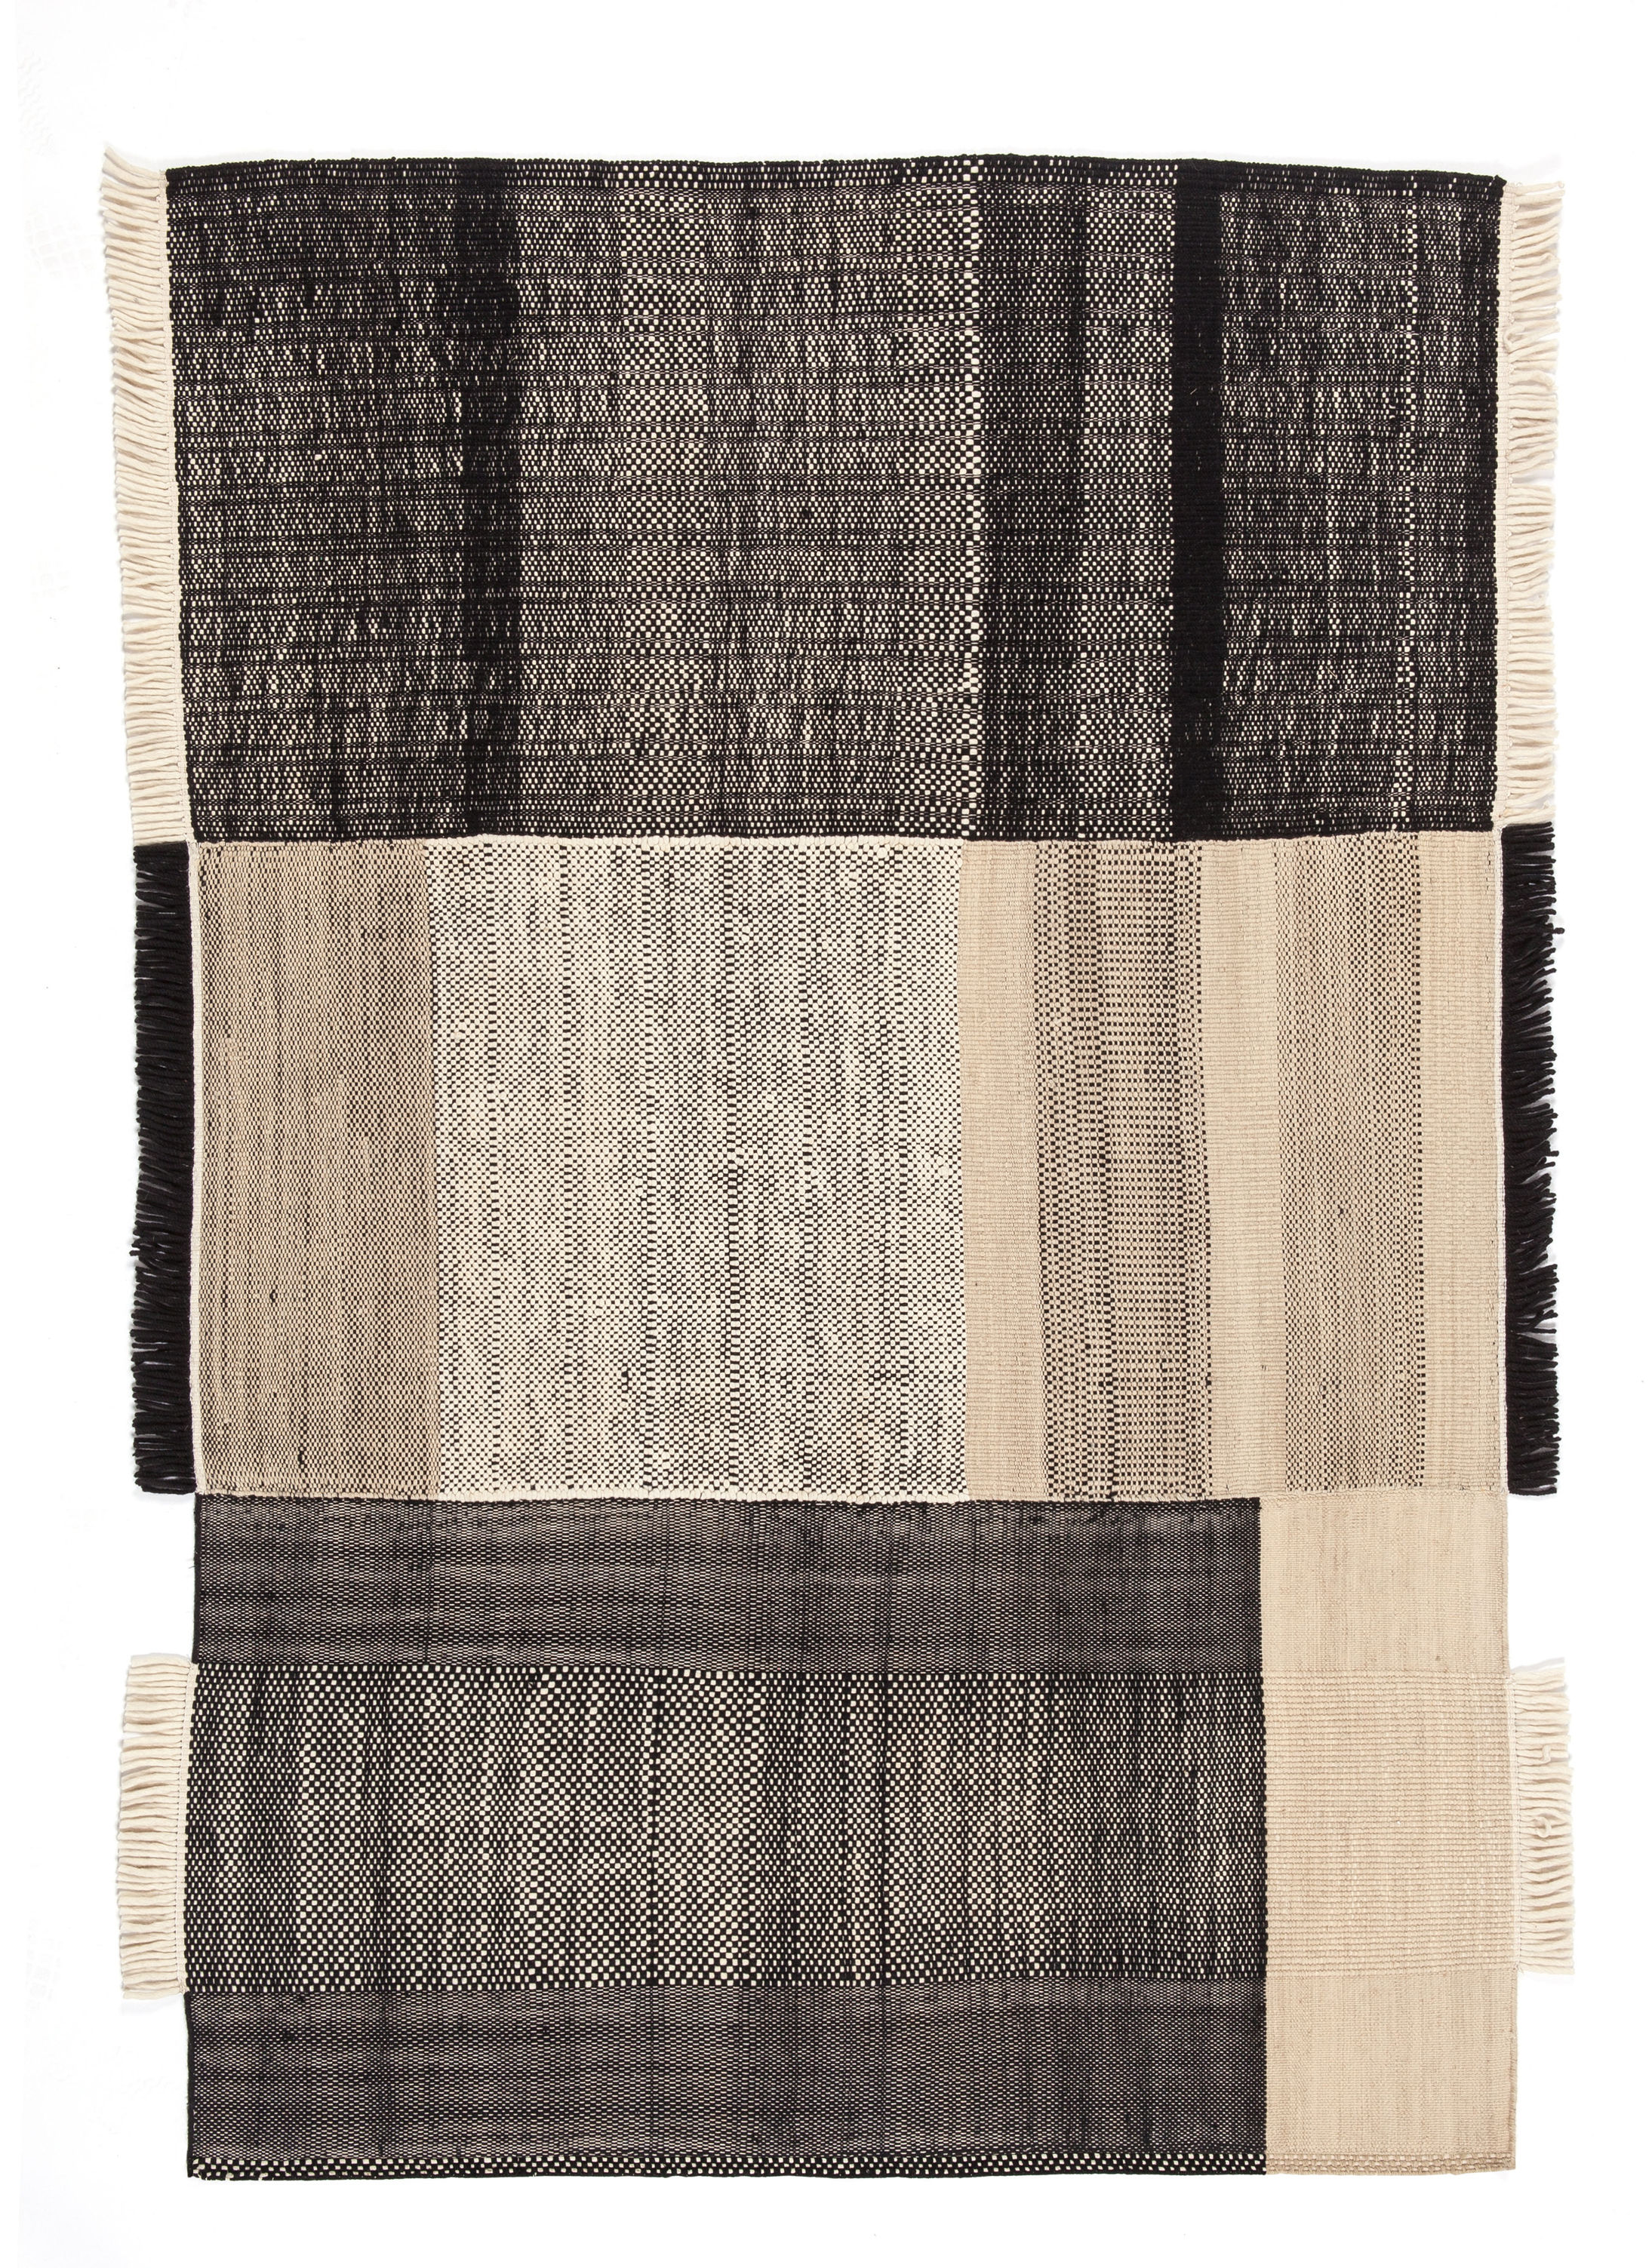 Decoration - Rugs - Tres Rug - 170 x 240 cm by Nanimarquina - Black - Cotton, Felt, New-zealand wool